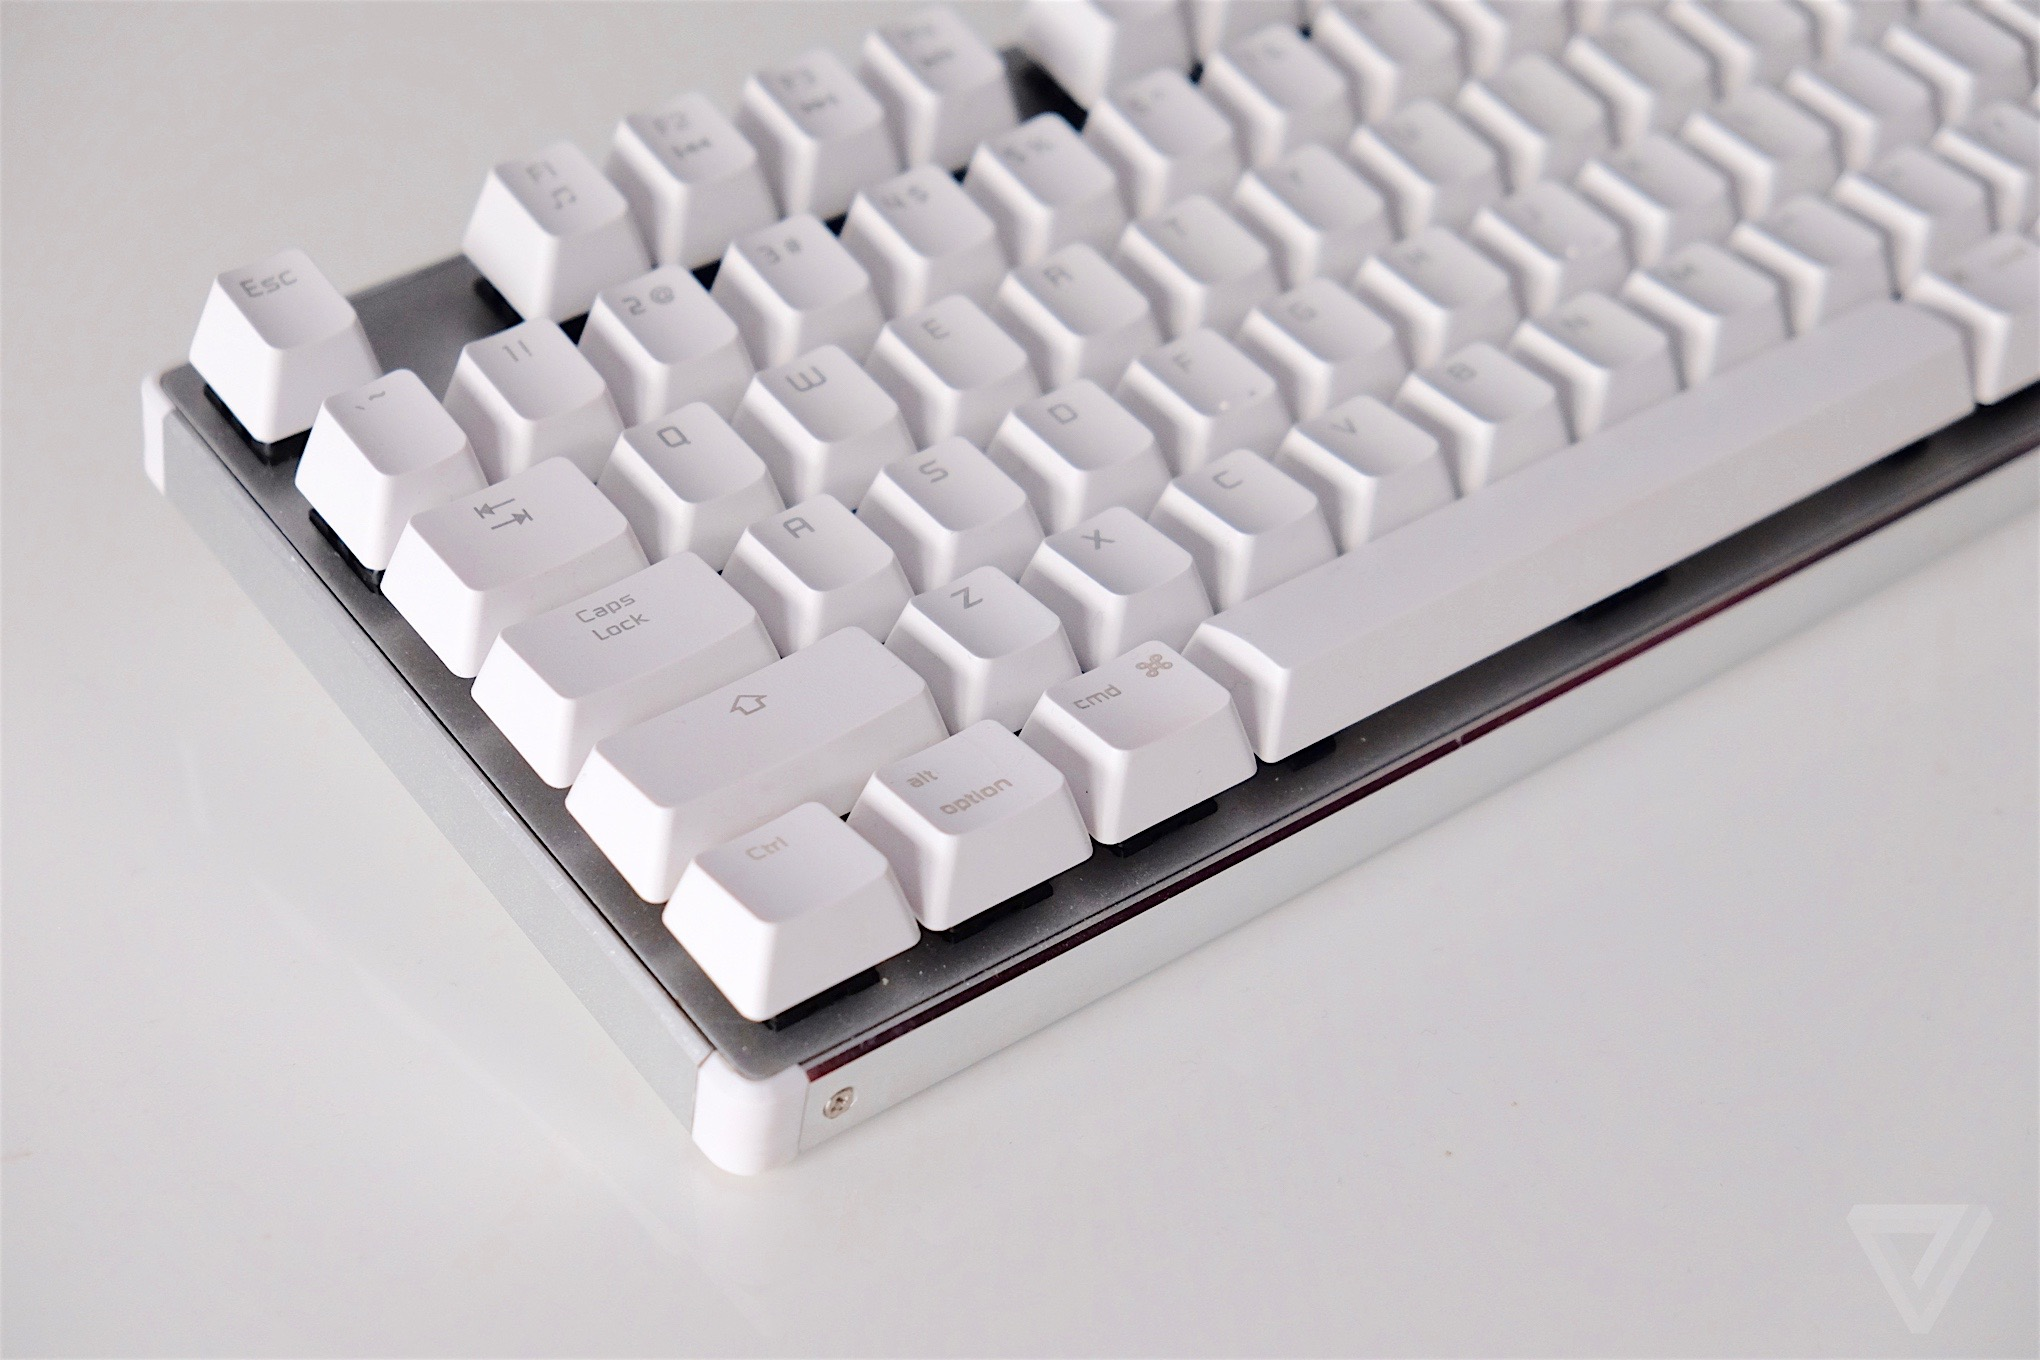 This Mechanical Keyboard Is A Great Cheap Option For Mac